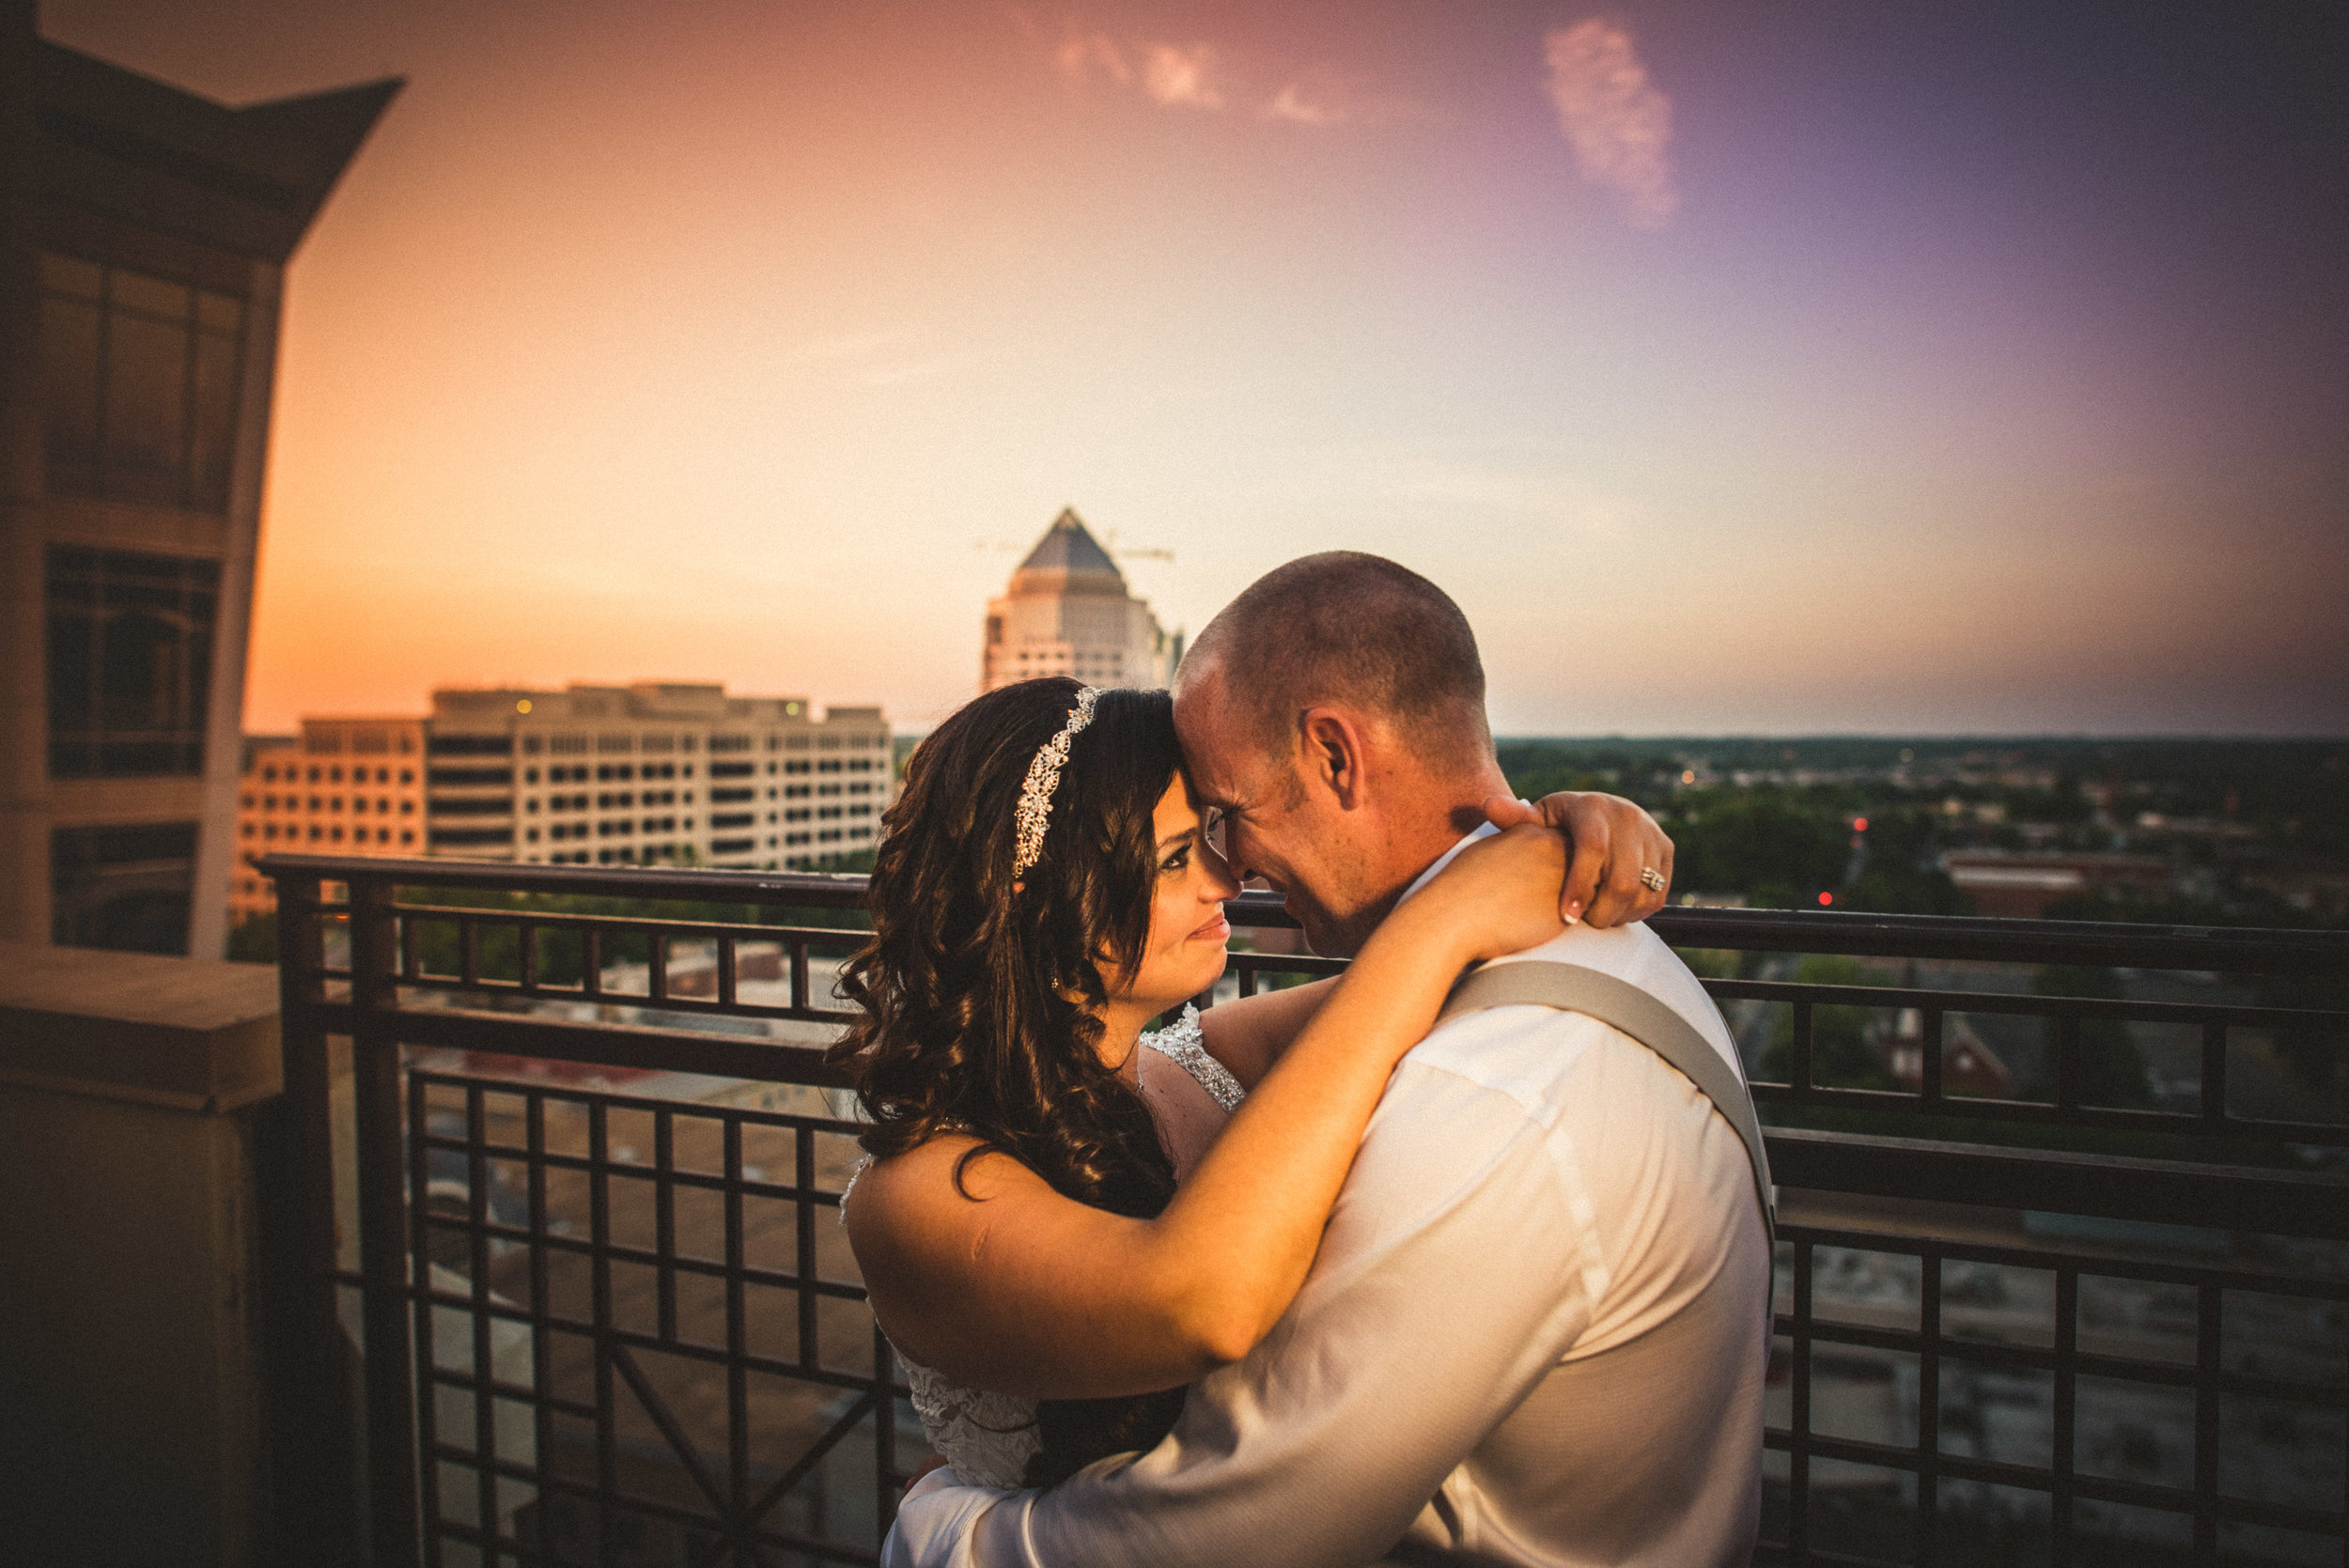 Bride and groom embrace with Odell bldg.jpg